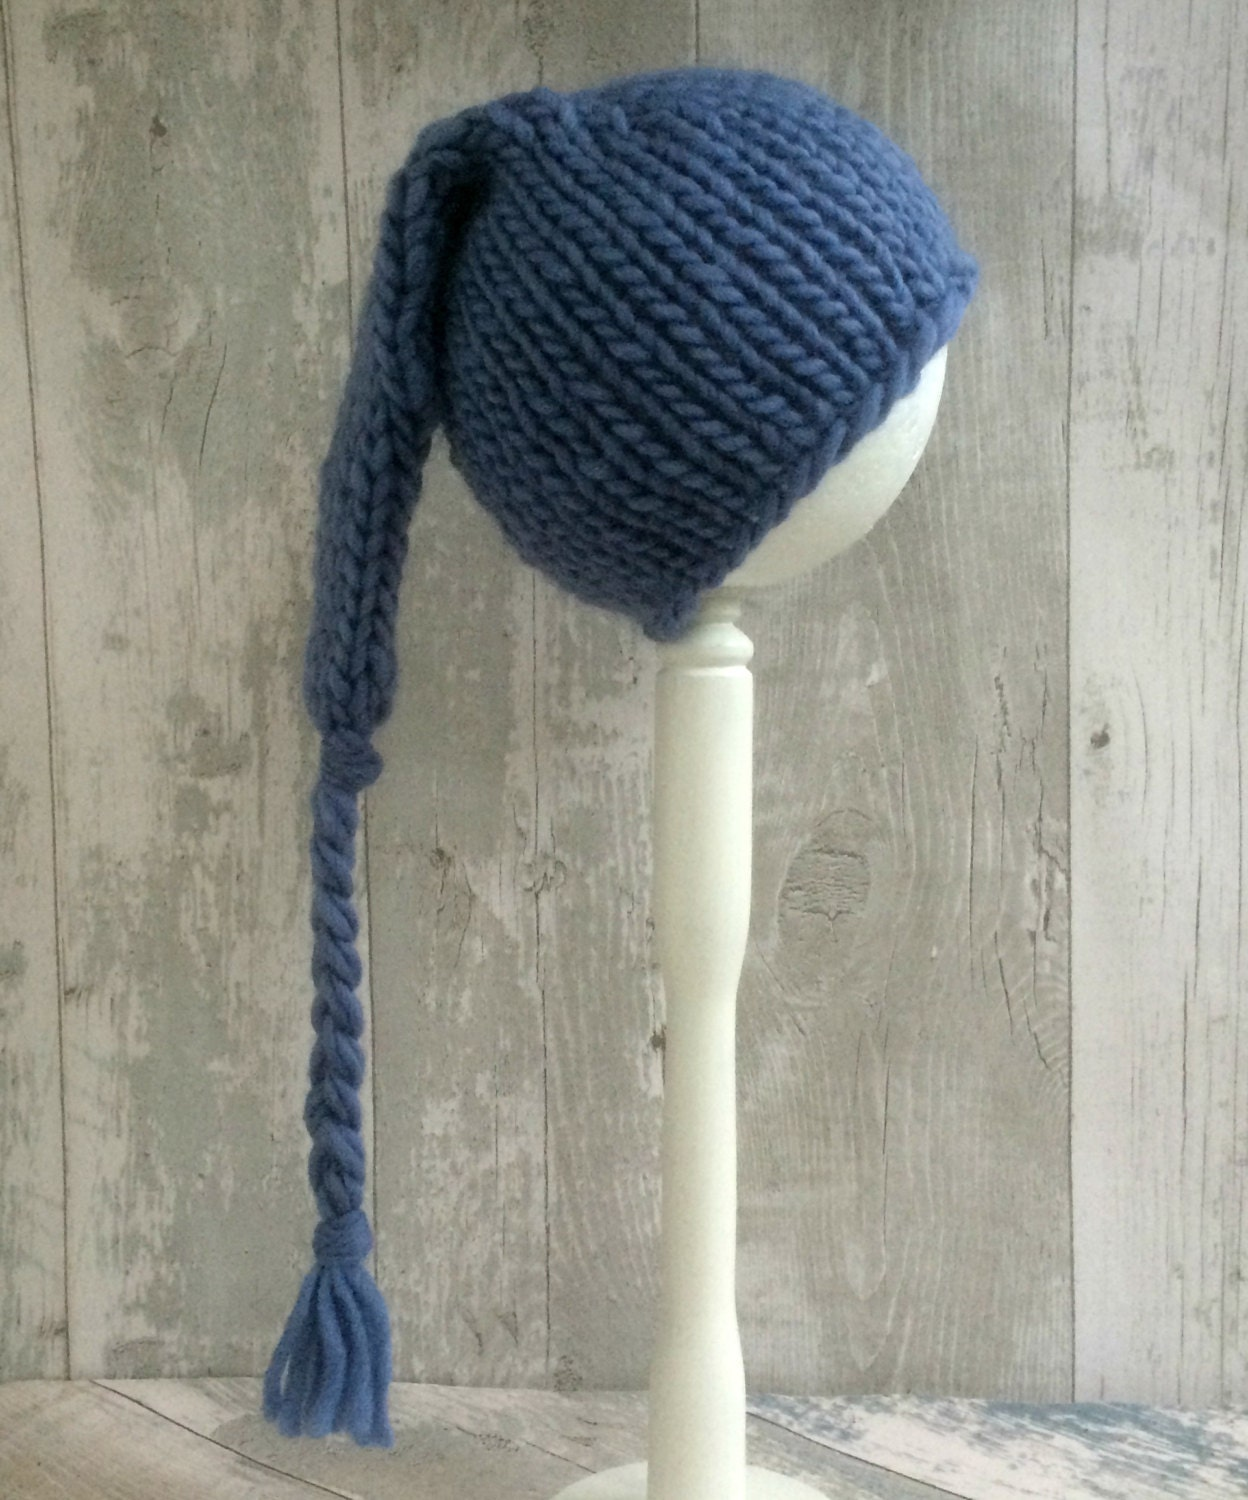 Knitting Pattern For Hat With Long Tail : Blue Knit Baby Boy Hat Long Tail Hat Hand Knit by SnugCreations